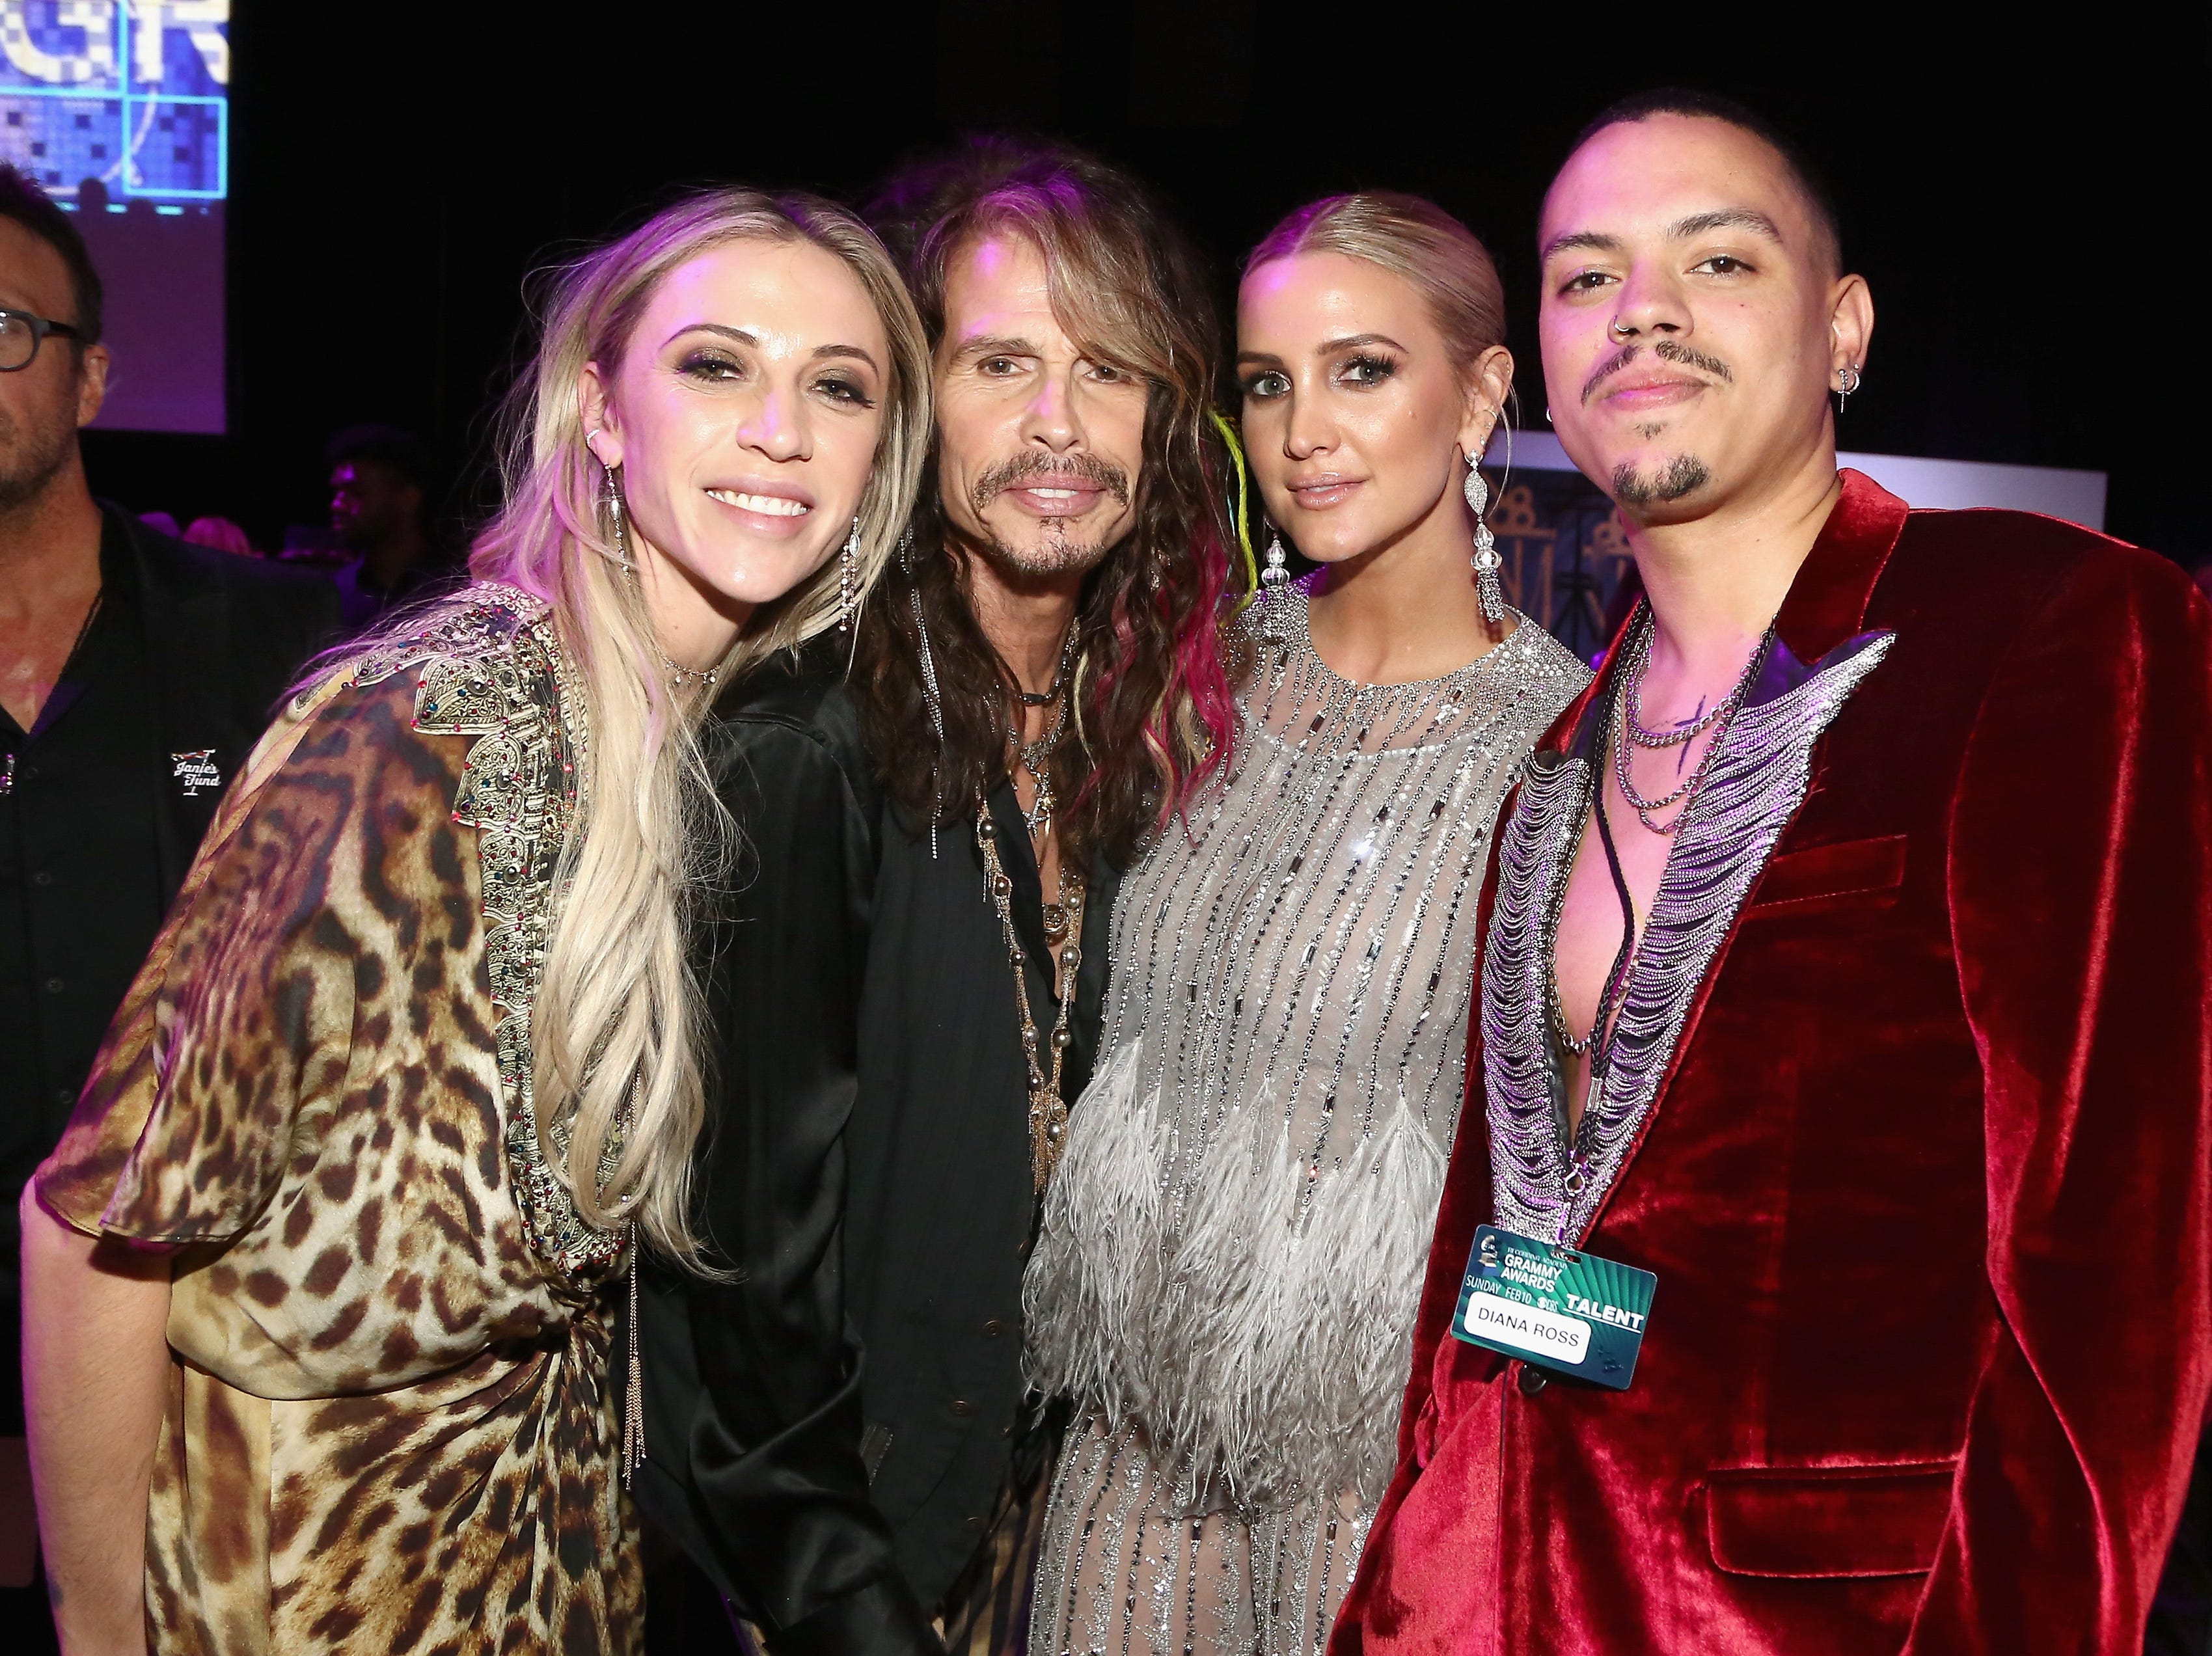 LOS ANGELES, CA - FEBRUARY 10:  Aimee Preston, Steven Tyler, Ashlee Simpson and Evan Ross attend Steven Tyler?s Second Annual GRAMMY Awards Viewing Party to benefit Janie?s Fund presented by Live Nation at Raleigh Studios on February 10, 2019 in Los Angeles, California.  (Photo by Tommaso Boddi/Getty Images for Janie's Fund) ORG XMIT: 775294826 ORIG FILE ID: 1097722084